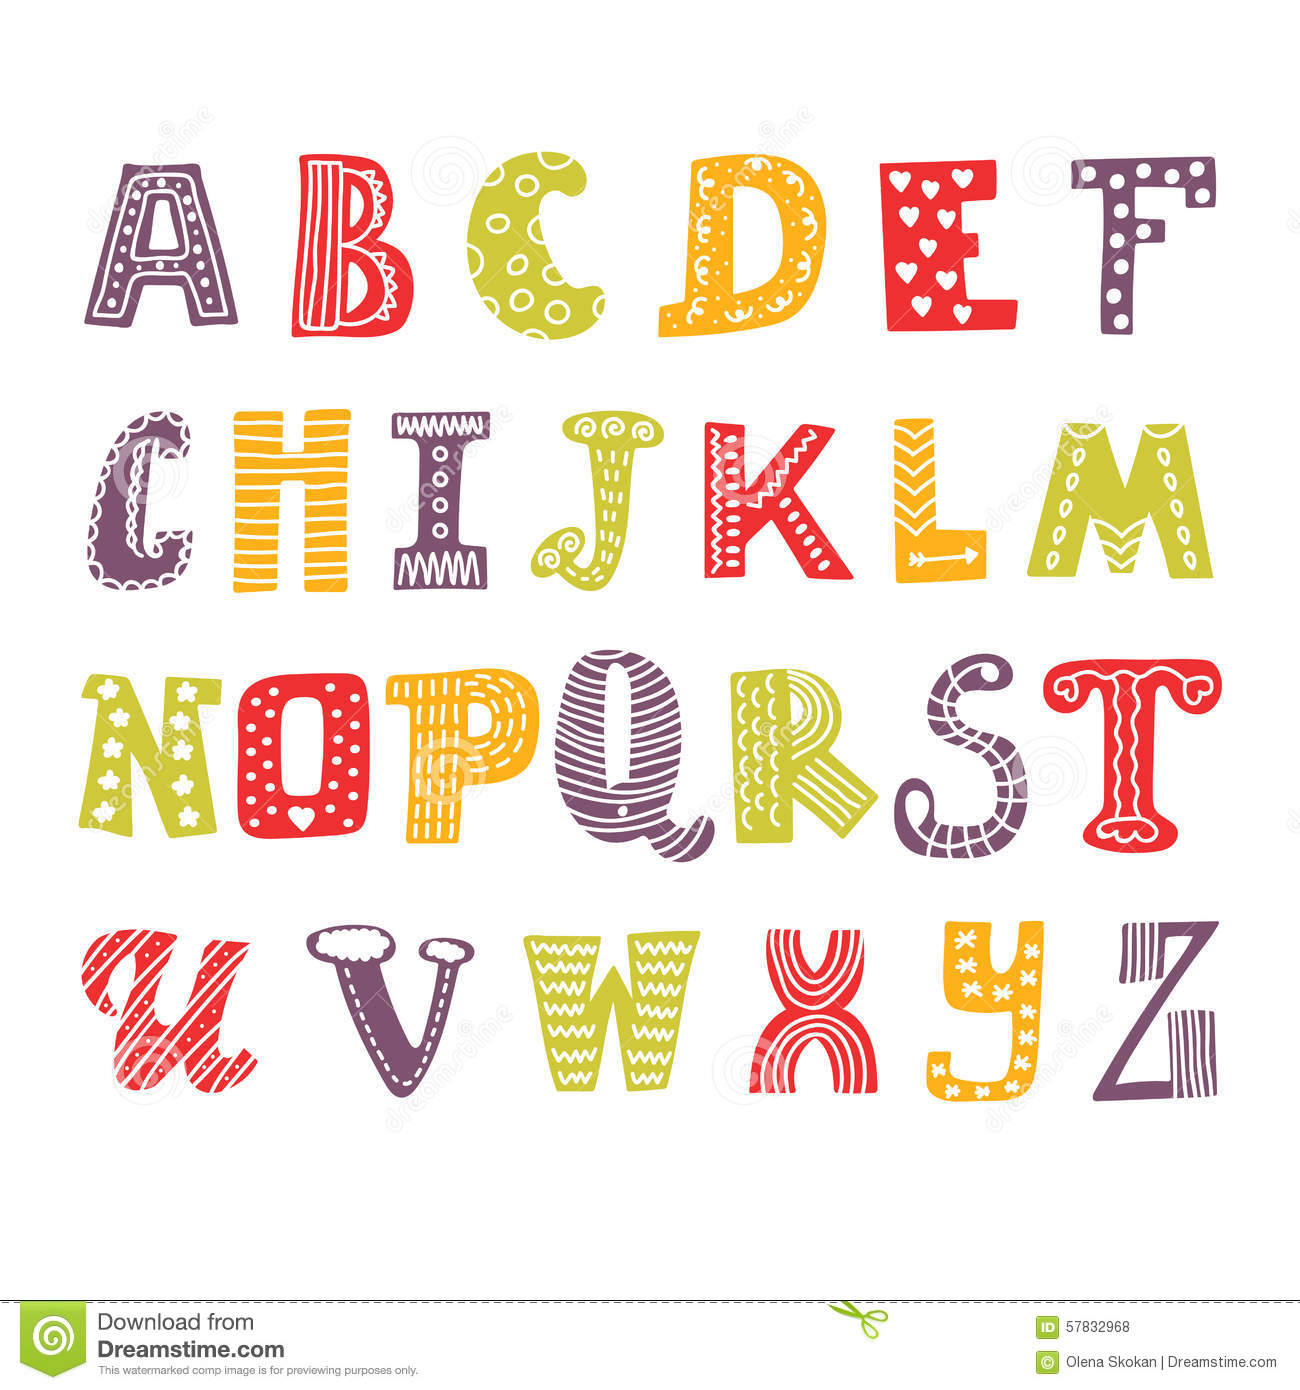 Cute Hand Drawing Alphabet Funny Font Drawn Design